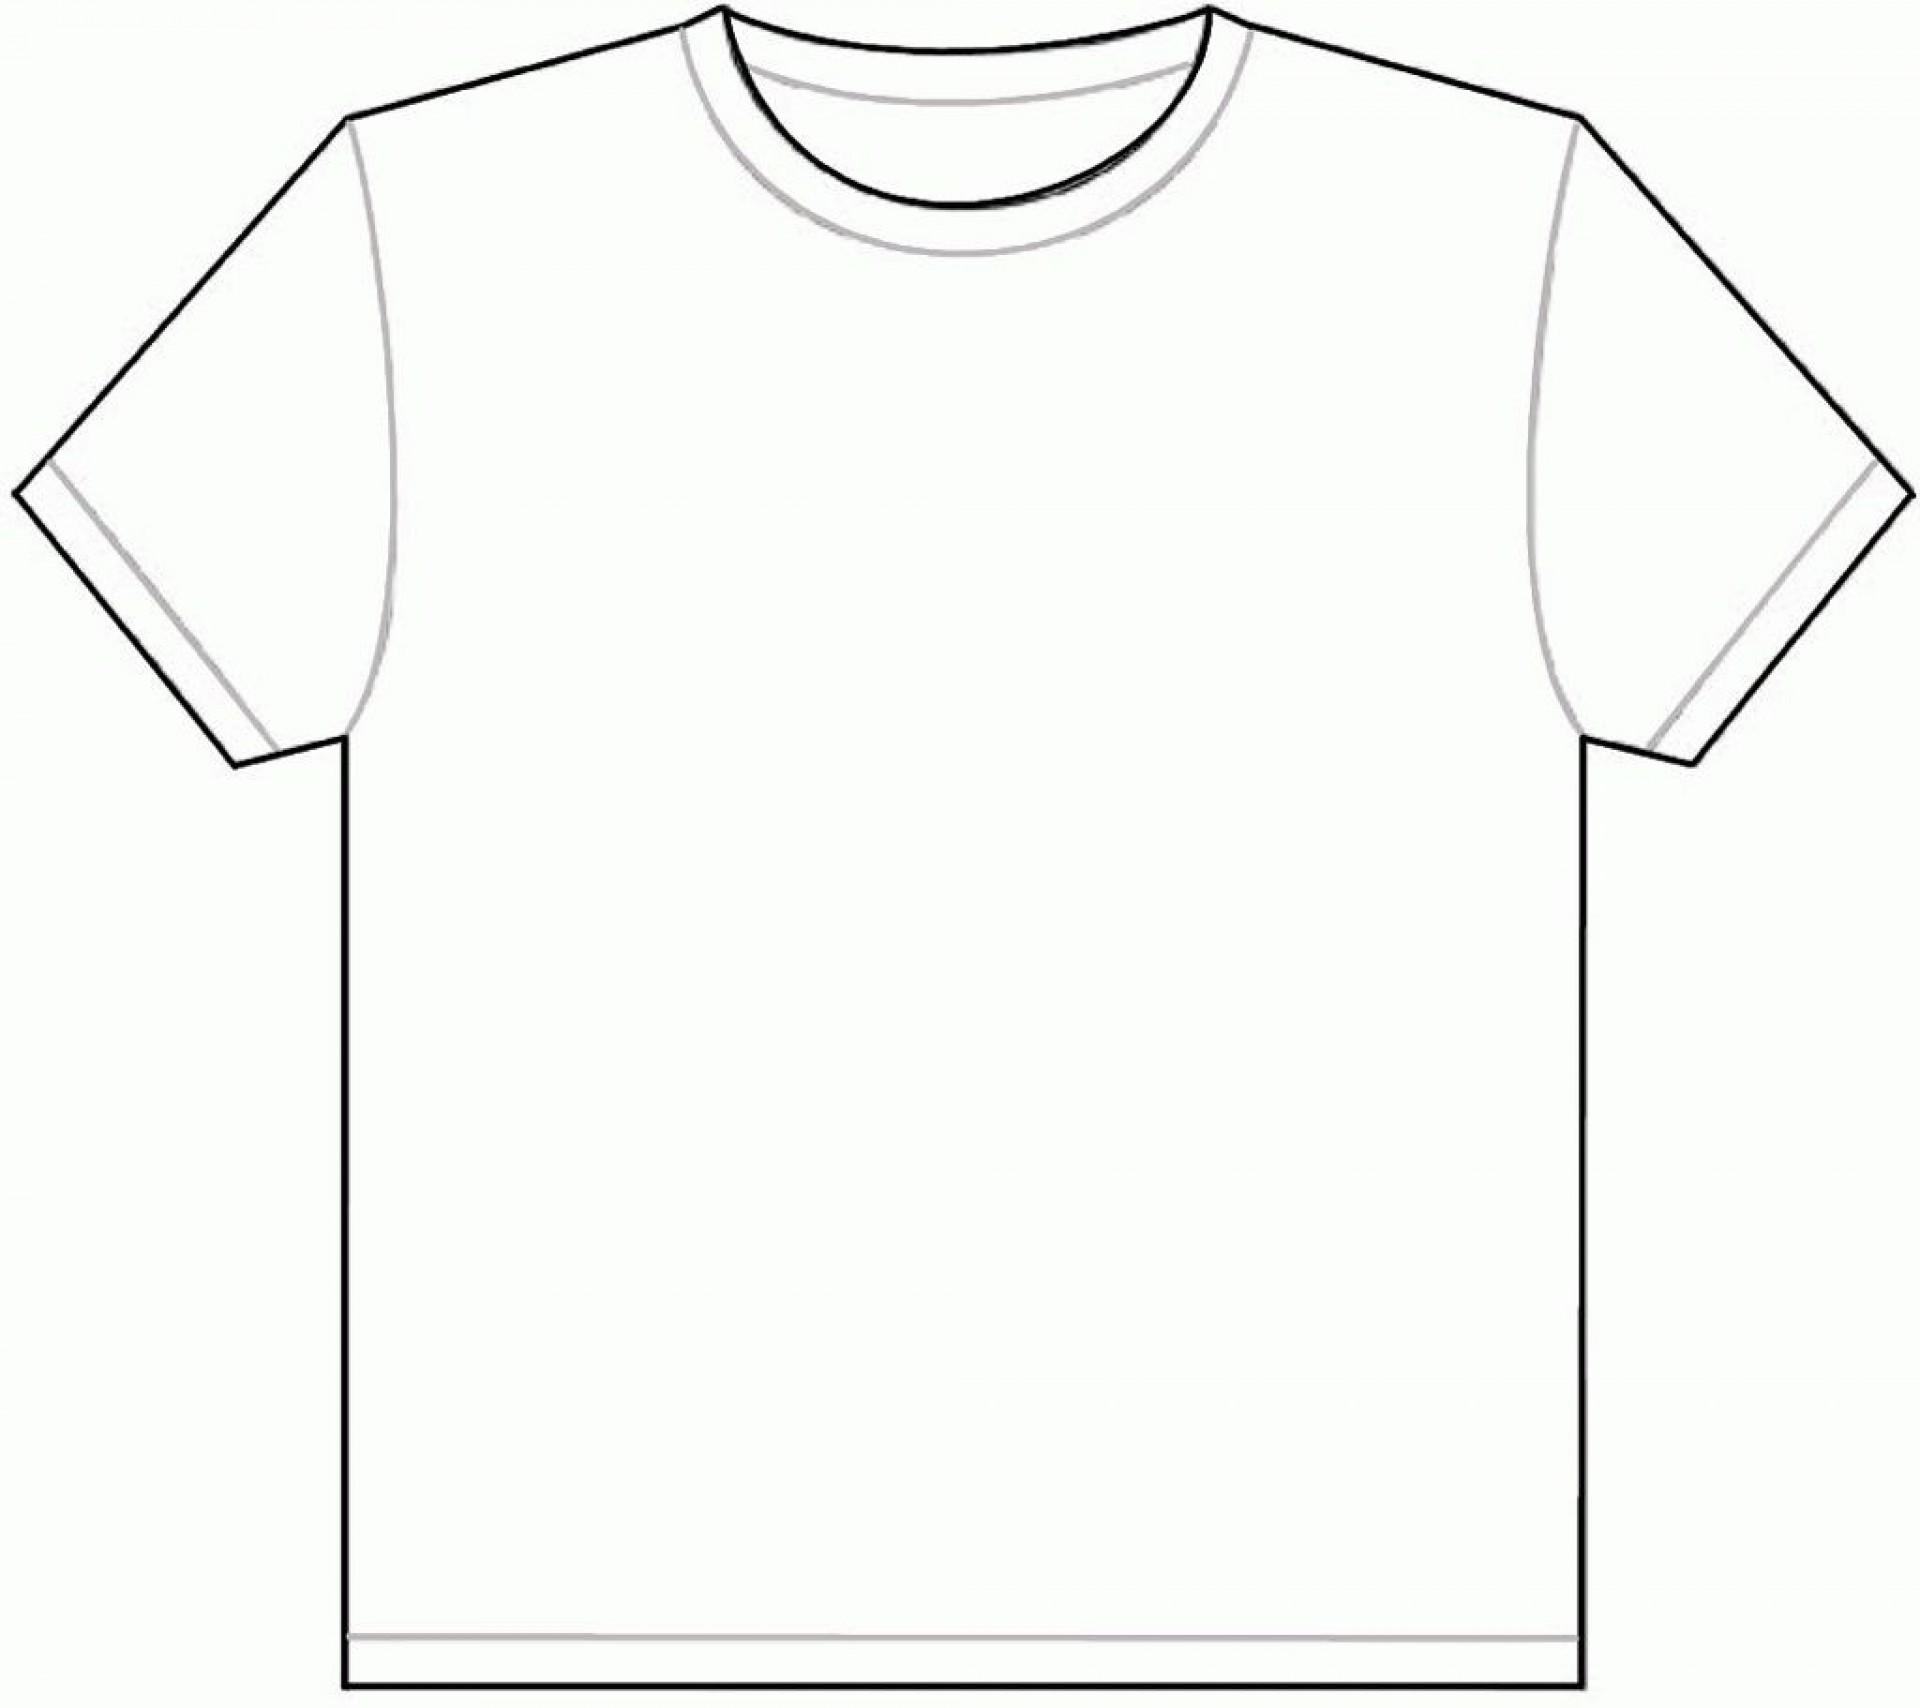 000 Beautiful Blank Tee Shirt Template High Definition  T Design Pdf Free T-shirt Front And Back Download1920